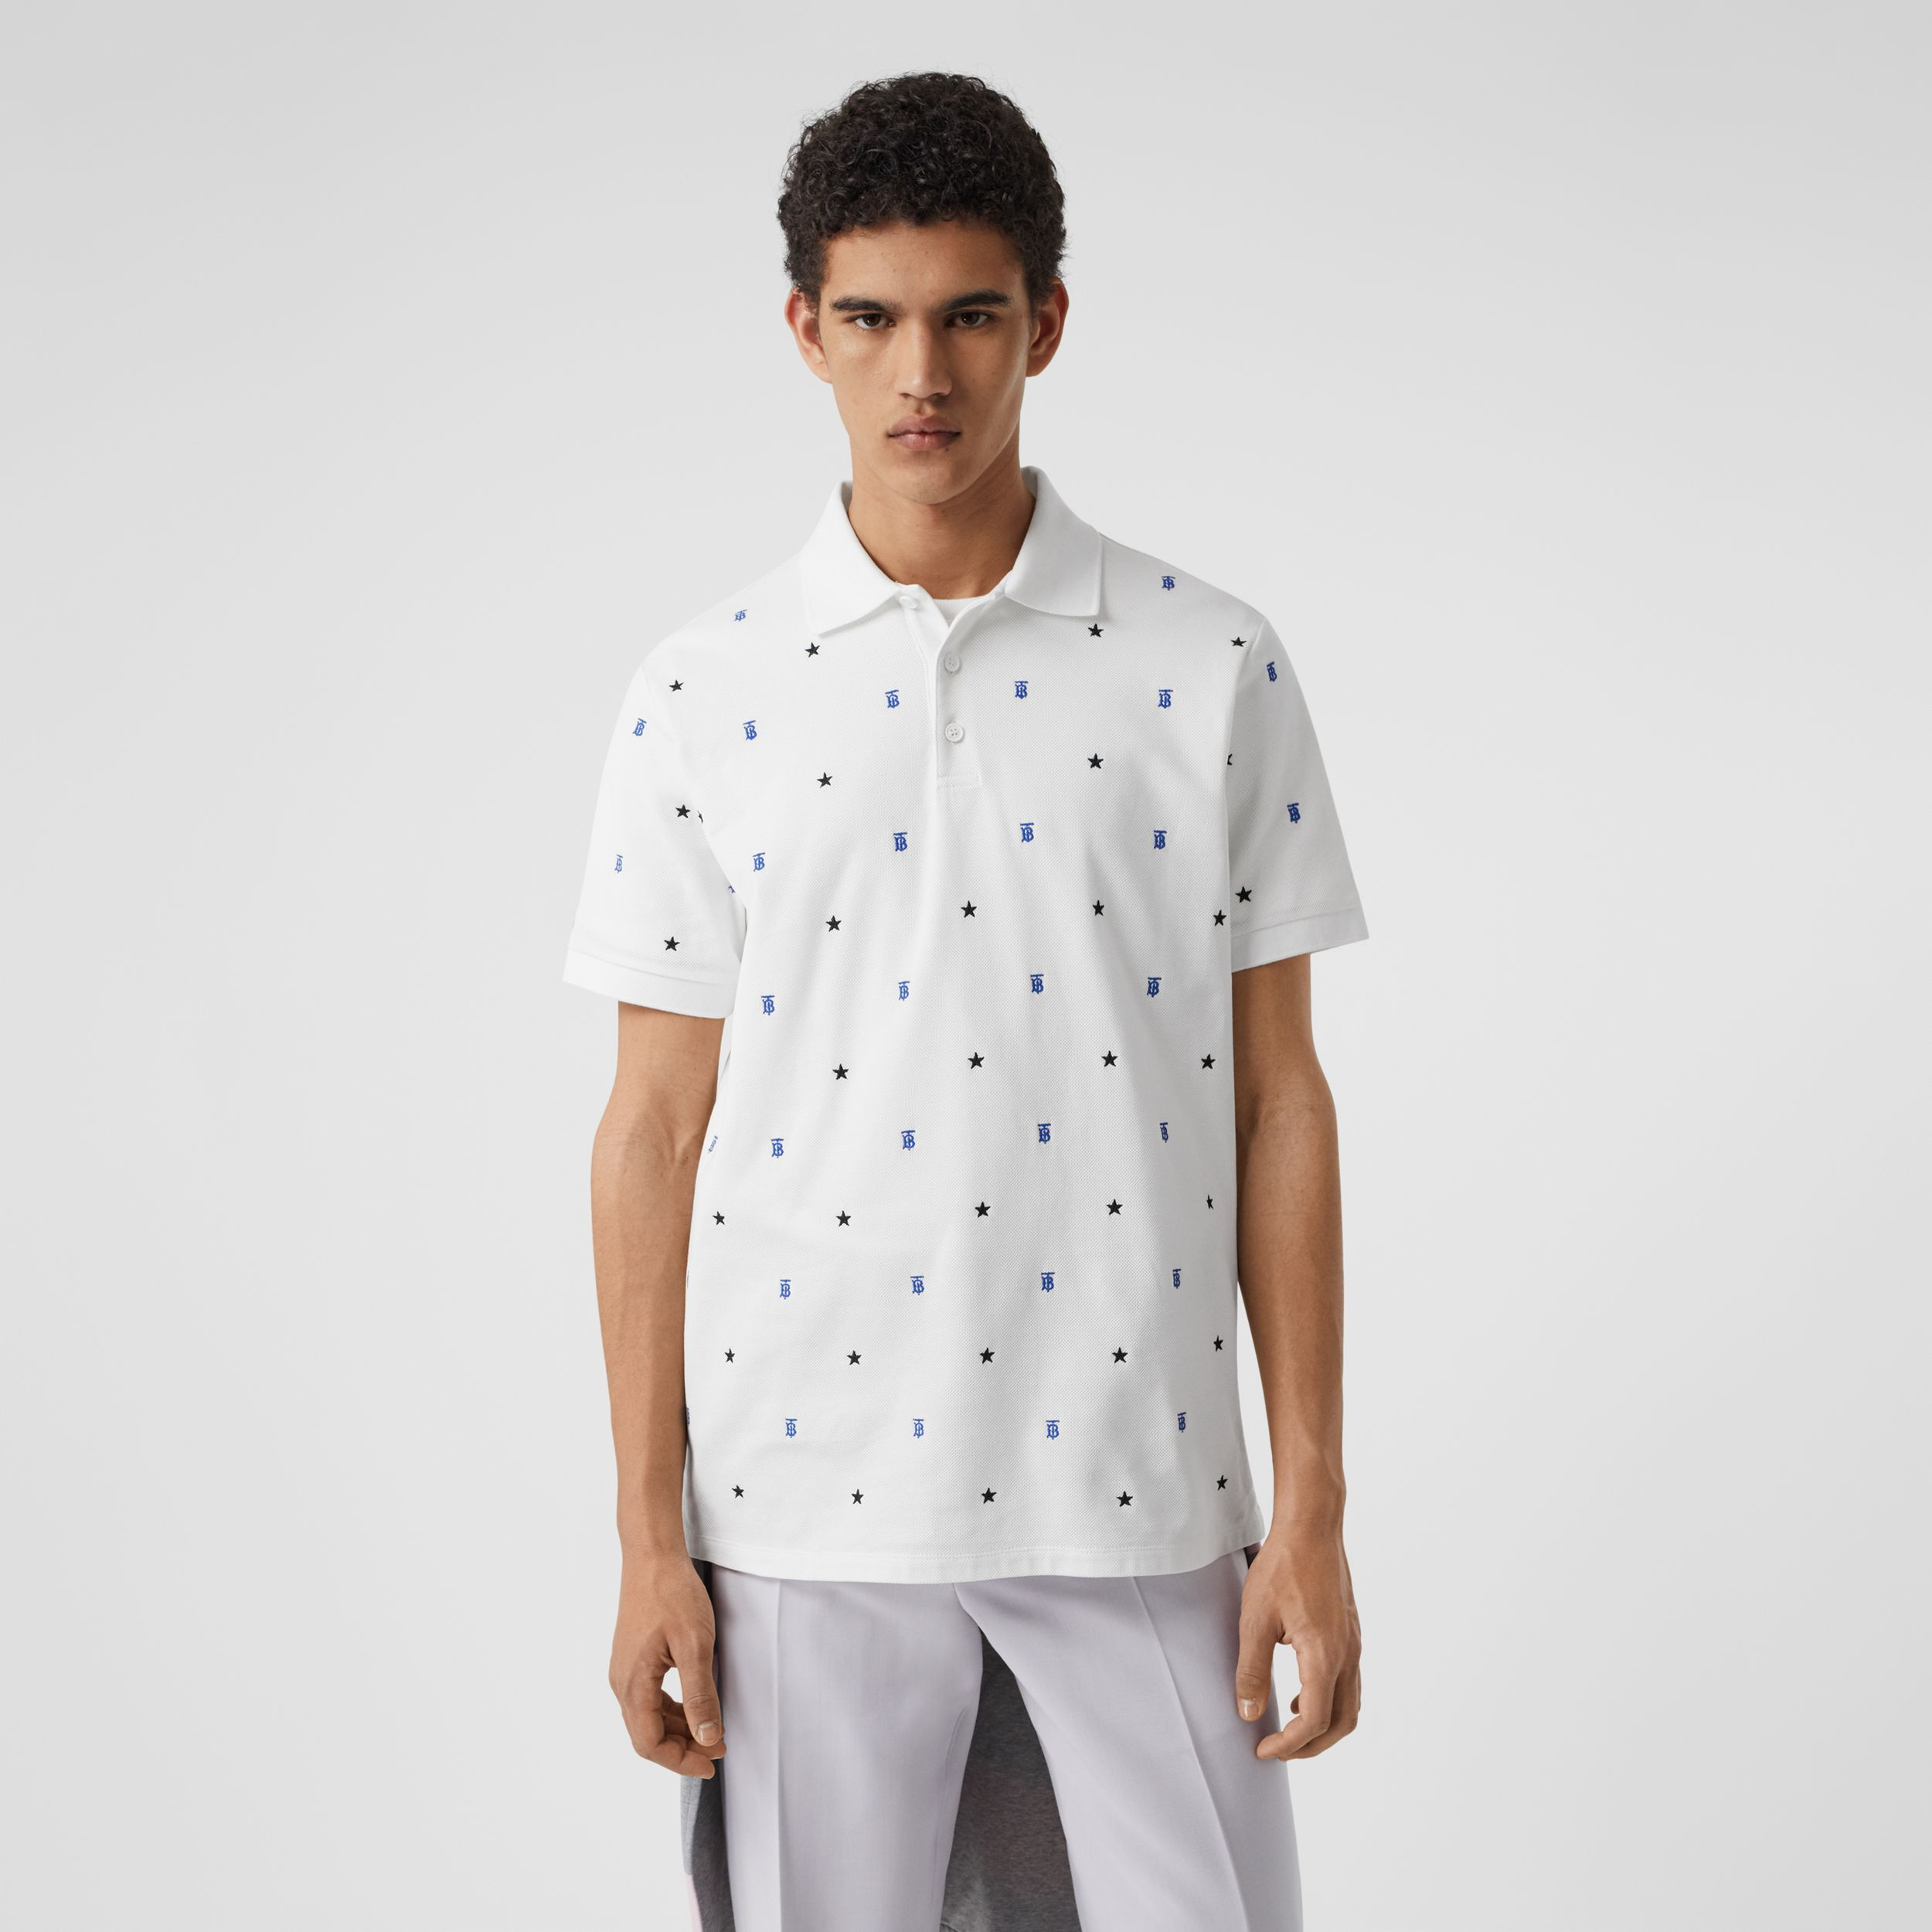 Star and Monogram Motif Cotton Piqué Polo Shirt in White - Men | Burberry Hong Kong S.A.R. - 1